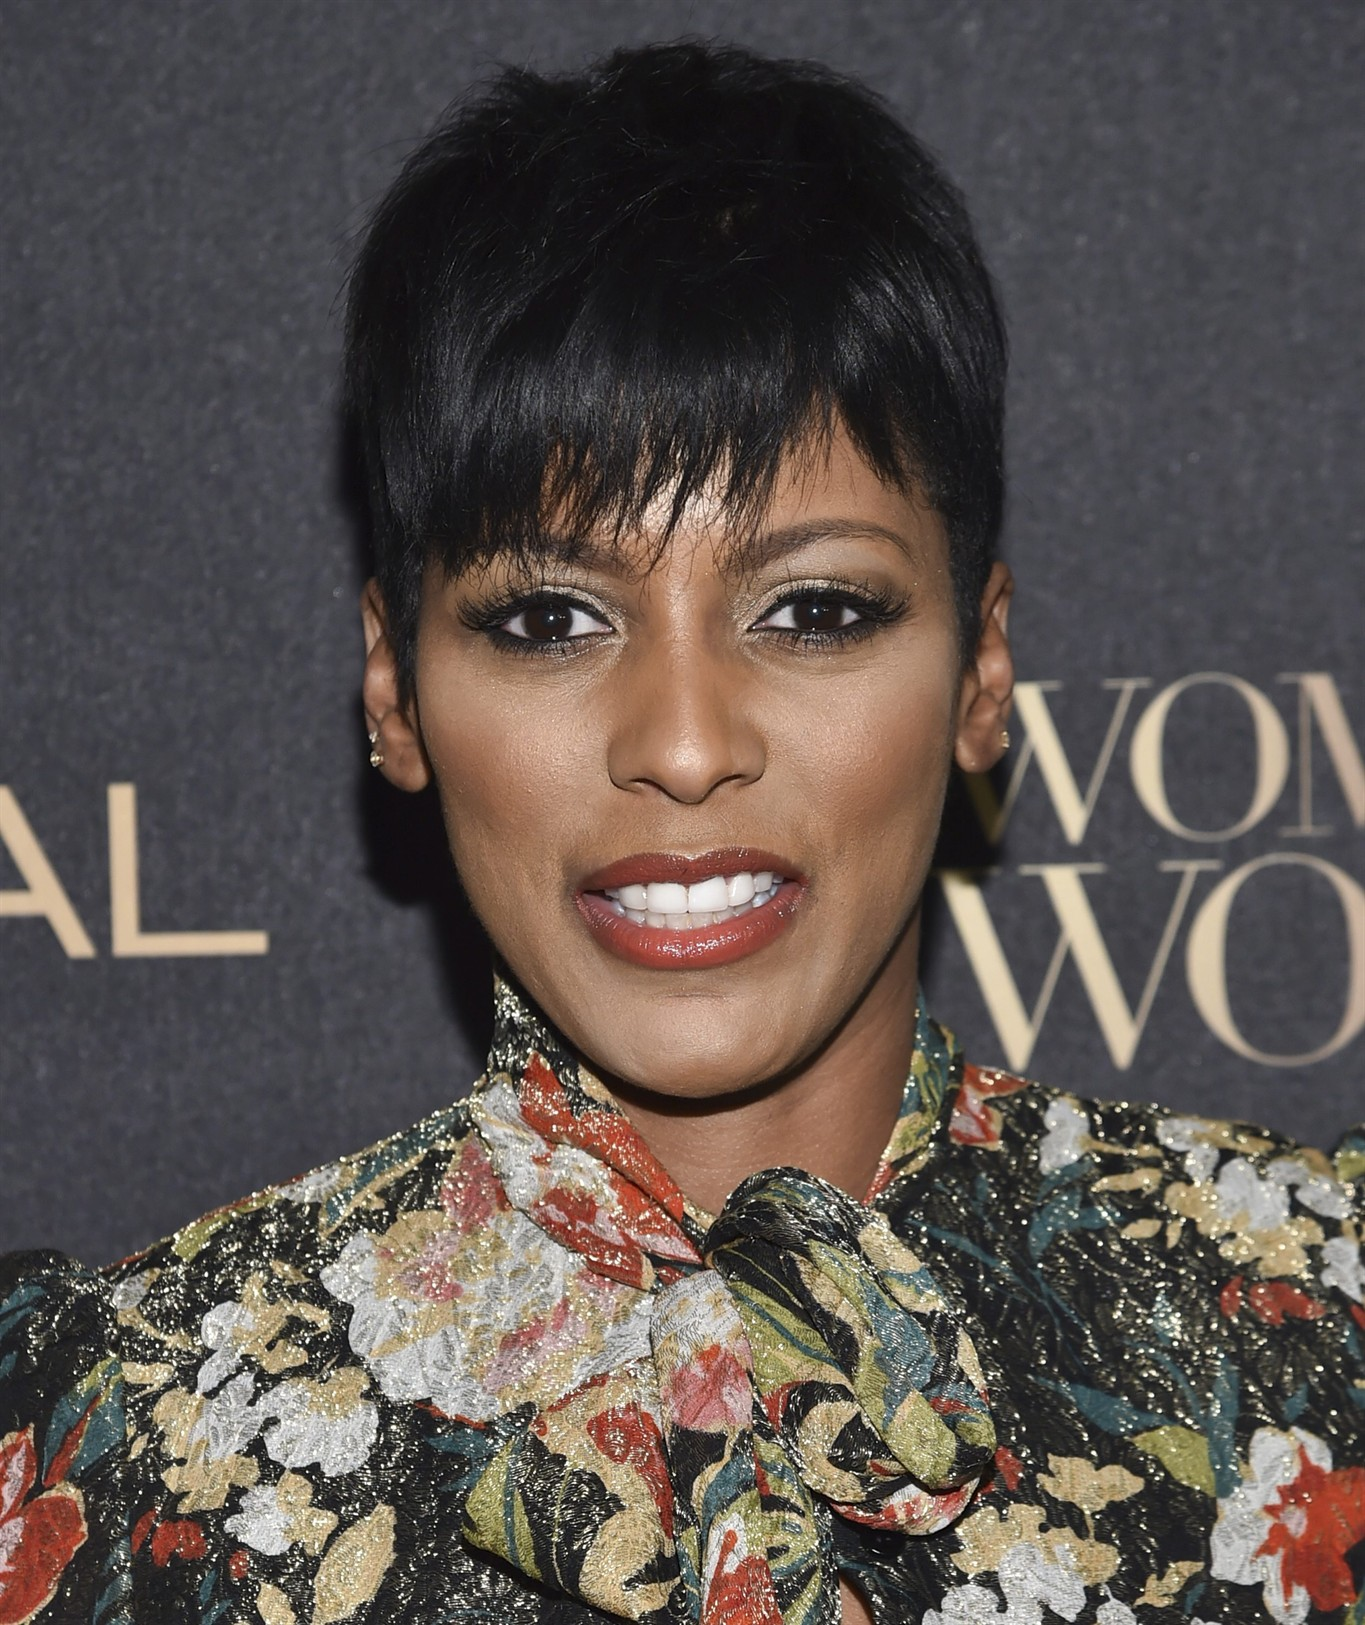 Tamron Hall exits NBC after learning she was losing 'Today' - 570 NEWS